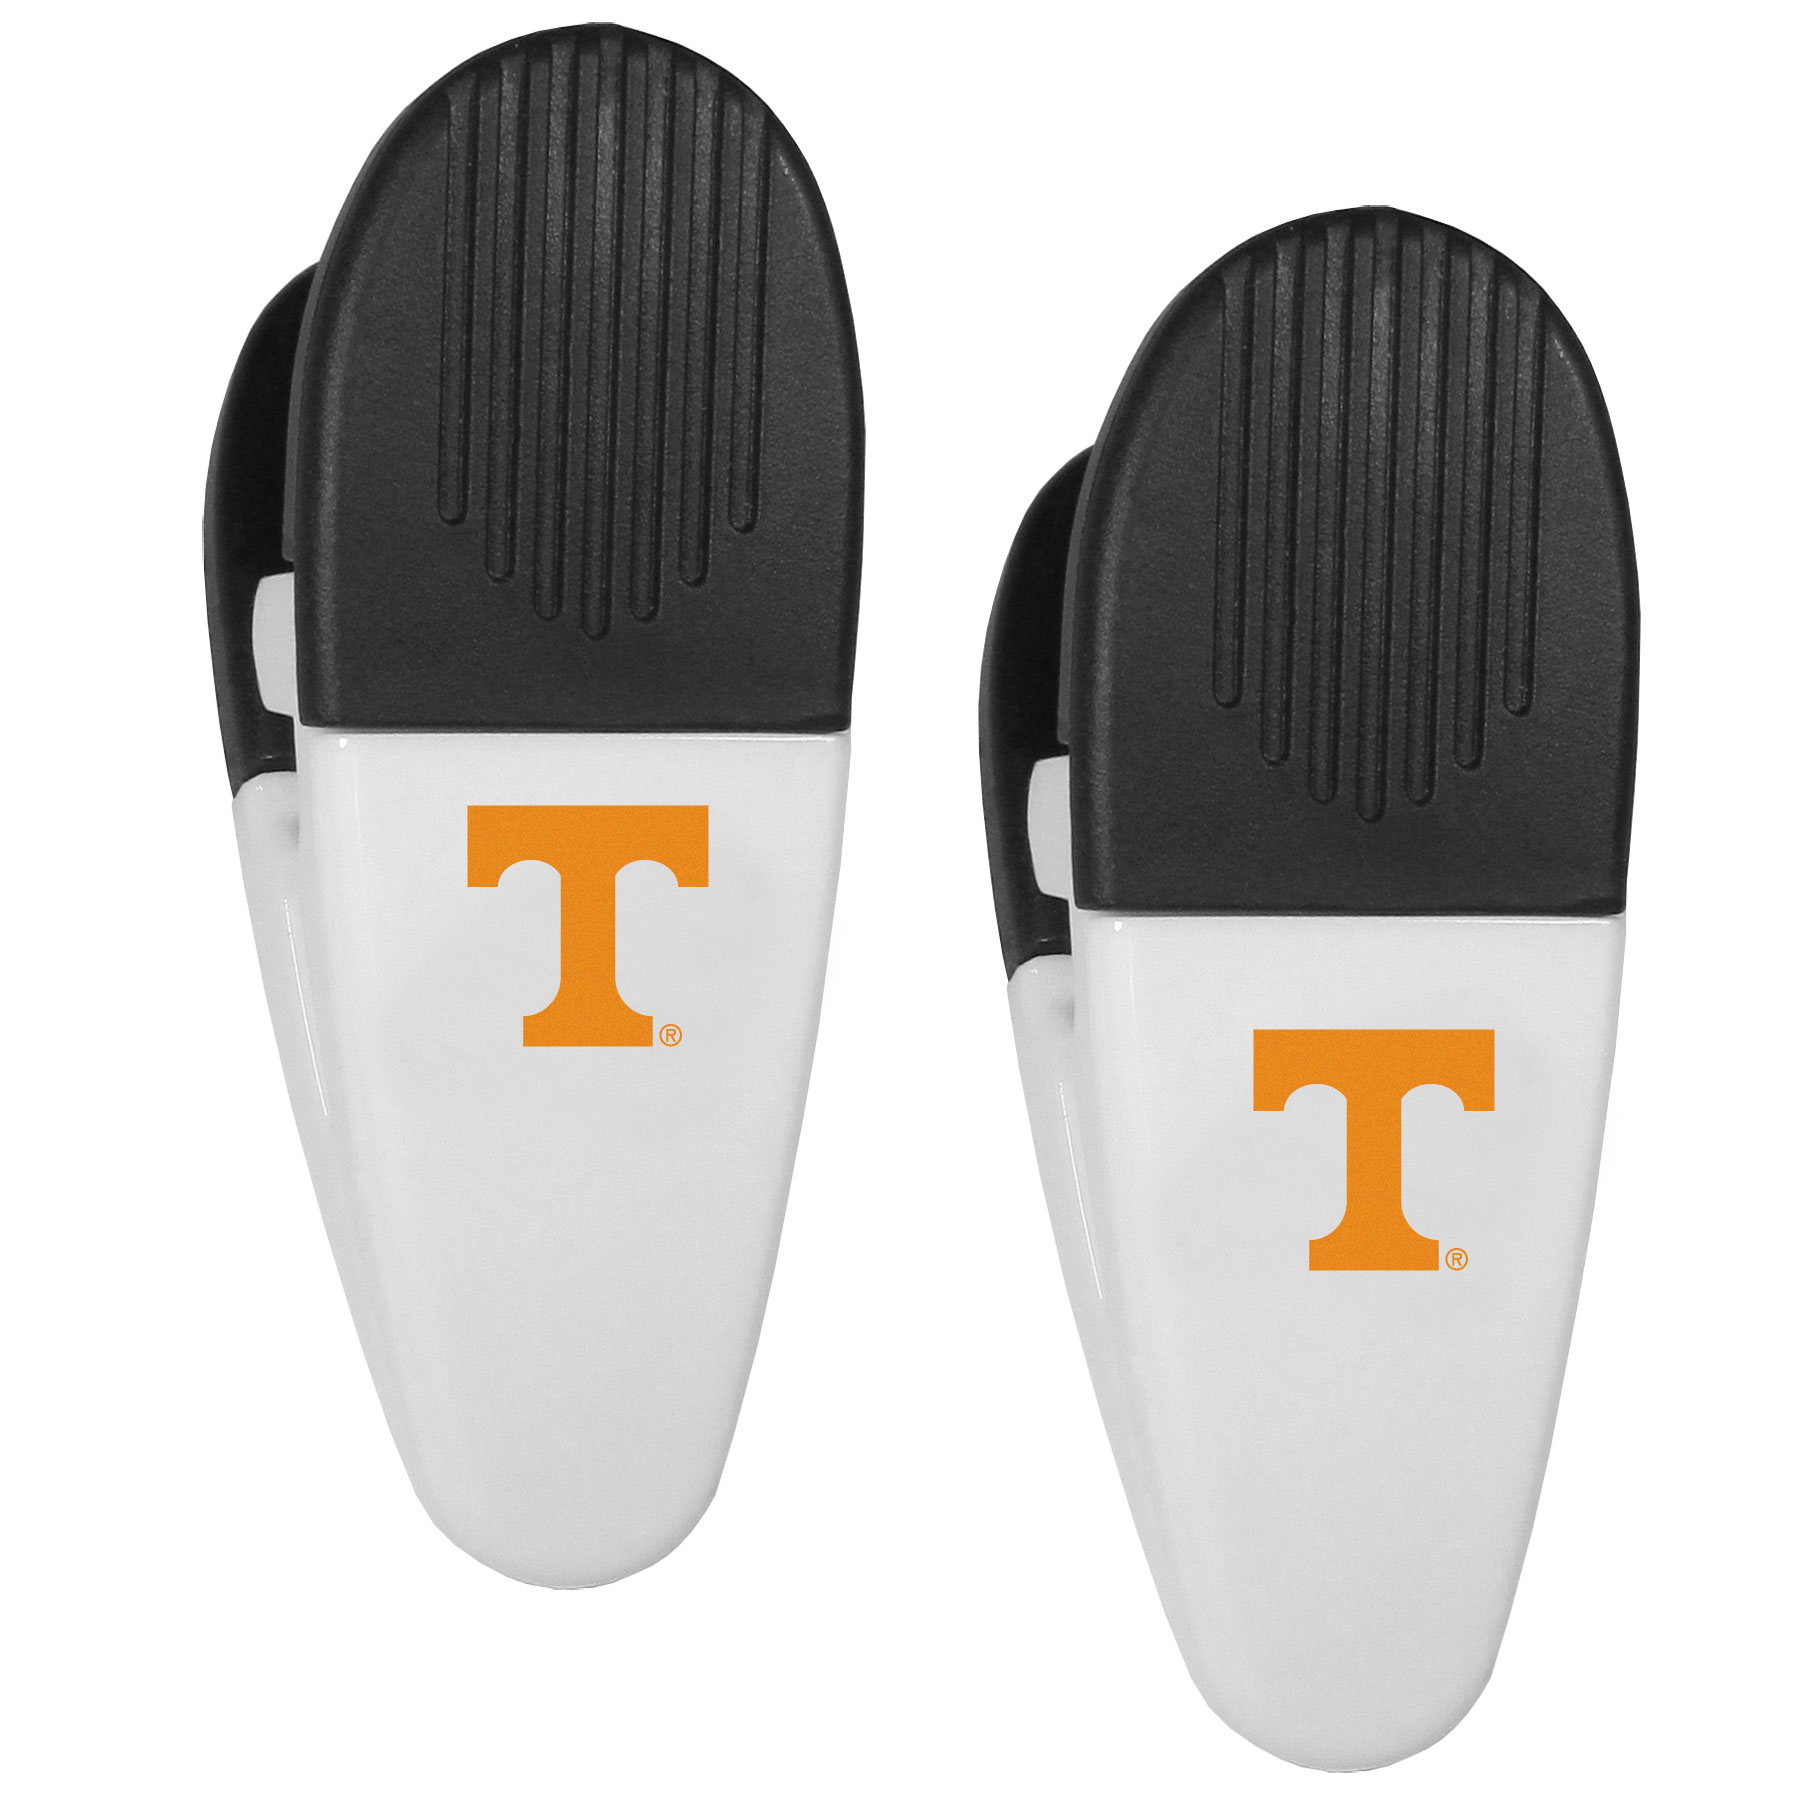 Tennessee Volunteers Mini Chip Clip Magnets, 2 pk - Our Tennessee Volunteers chip clip magnets feature a crisp team logo on the front of the clip. The clip is perfect for sealing chips for freshness and with the powerful magnet on the back it can be used to attach notes to the fridge or hanging your child's artwork. Set of 2 magnet clips, each clip is 3.5 inches tall and 1.25 inch wide.